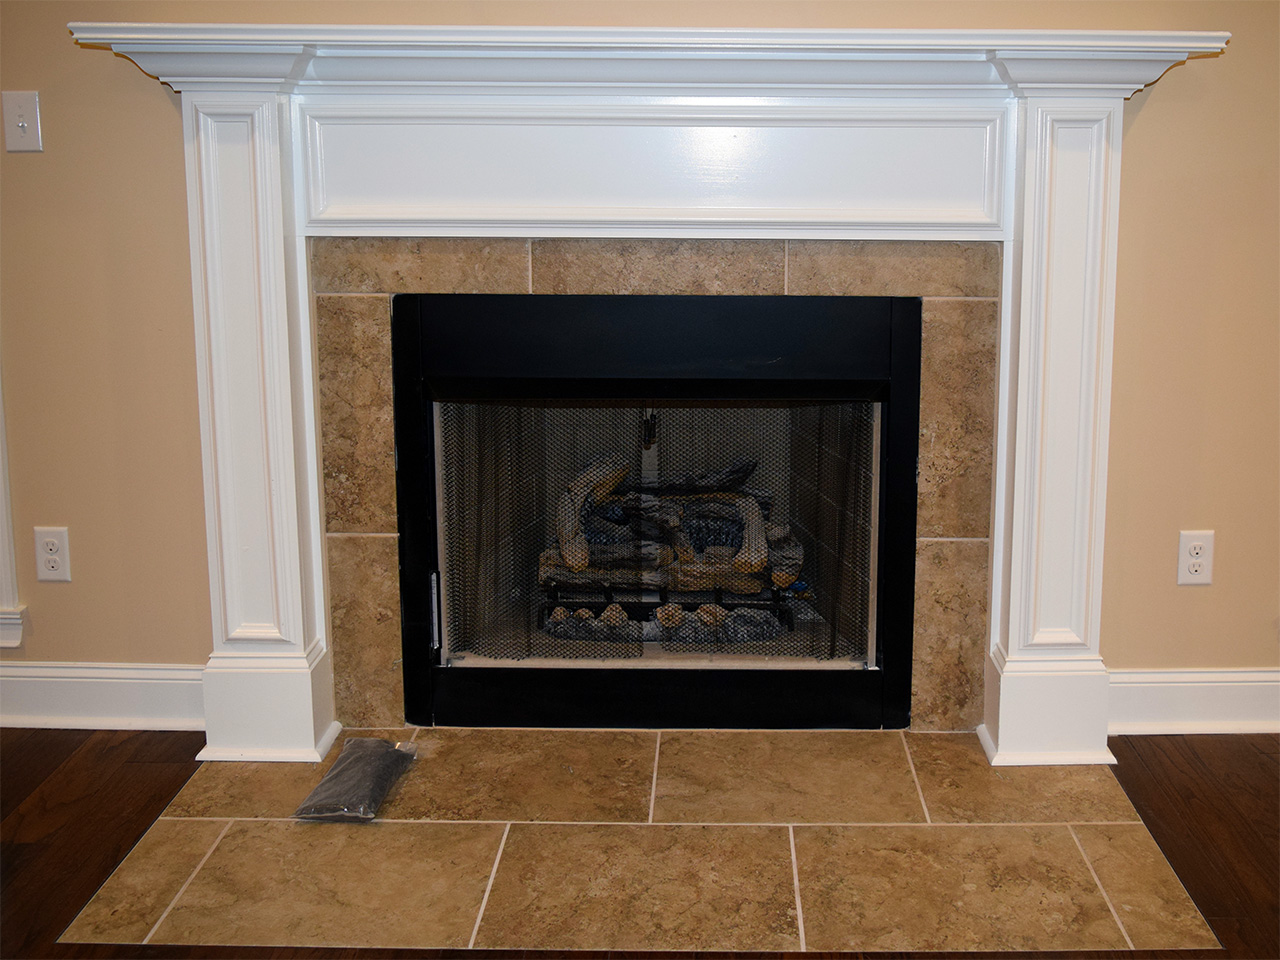 Hill Construction tiled fireplace.